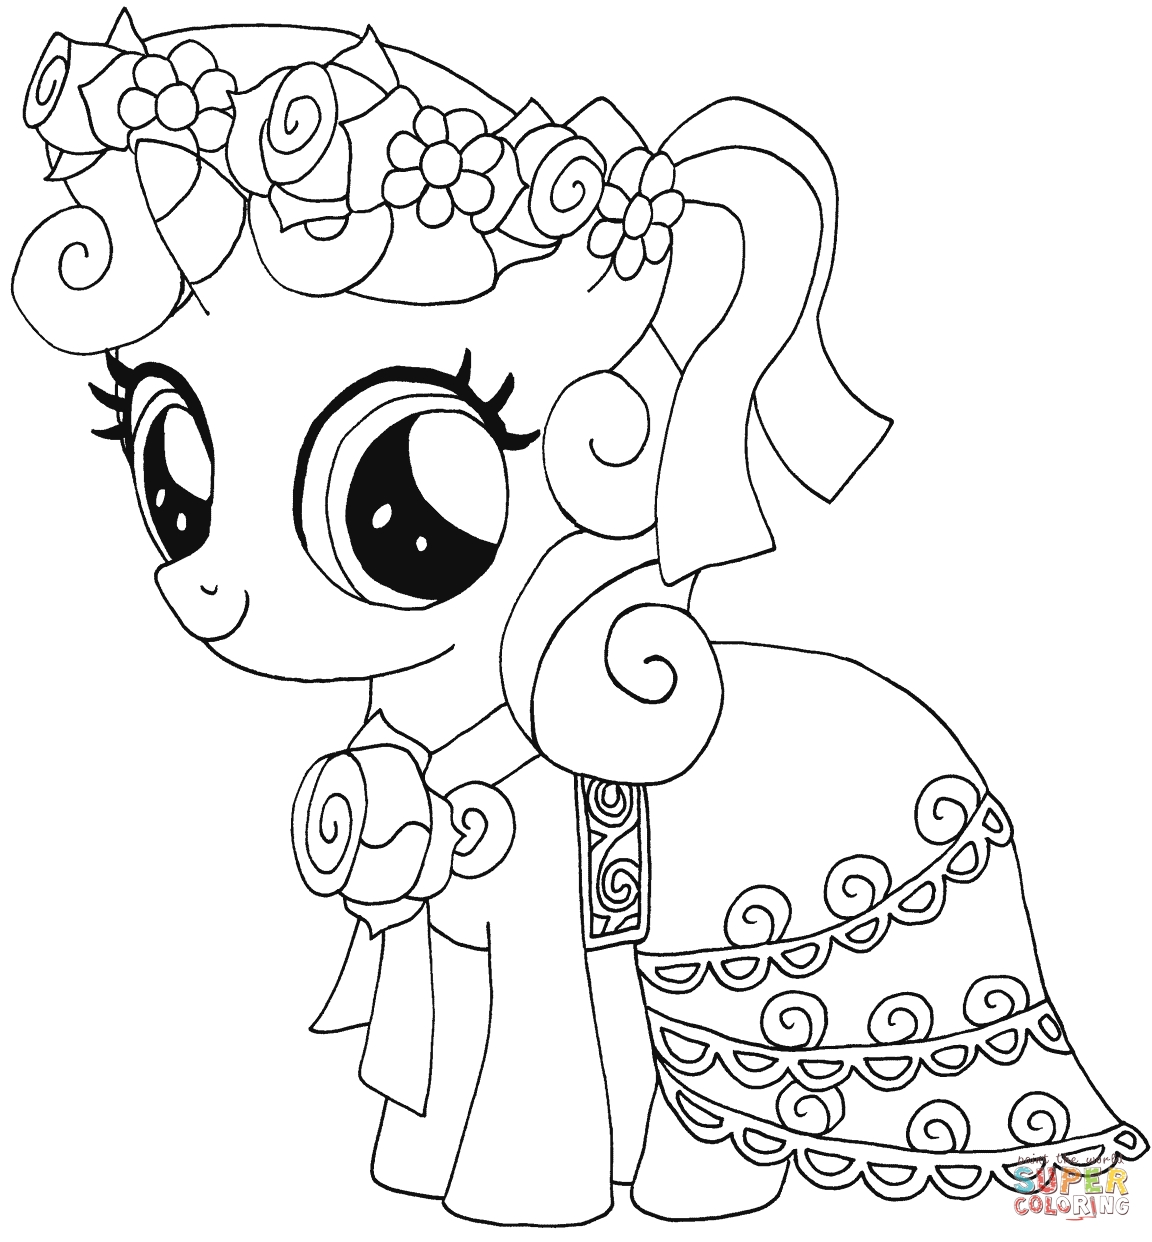 my little pony printable coloring pages - my little pony sweetie belle